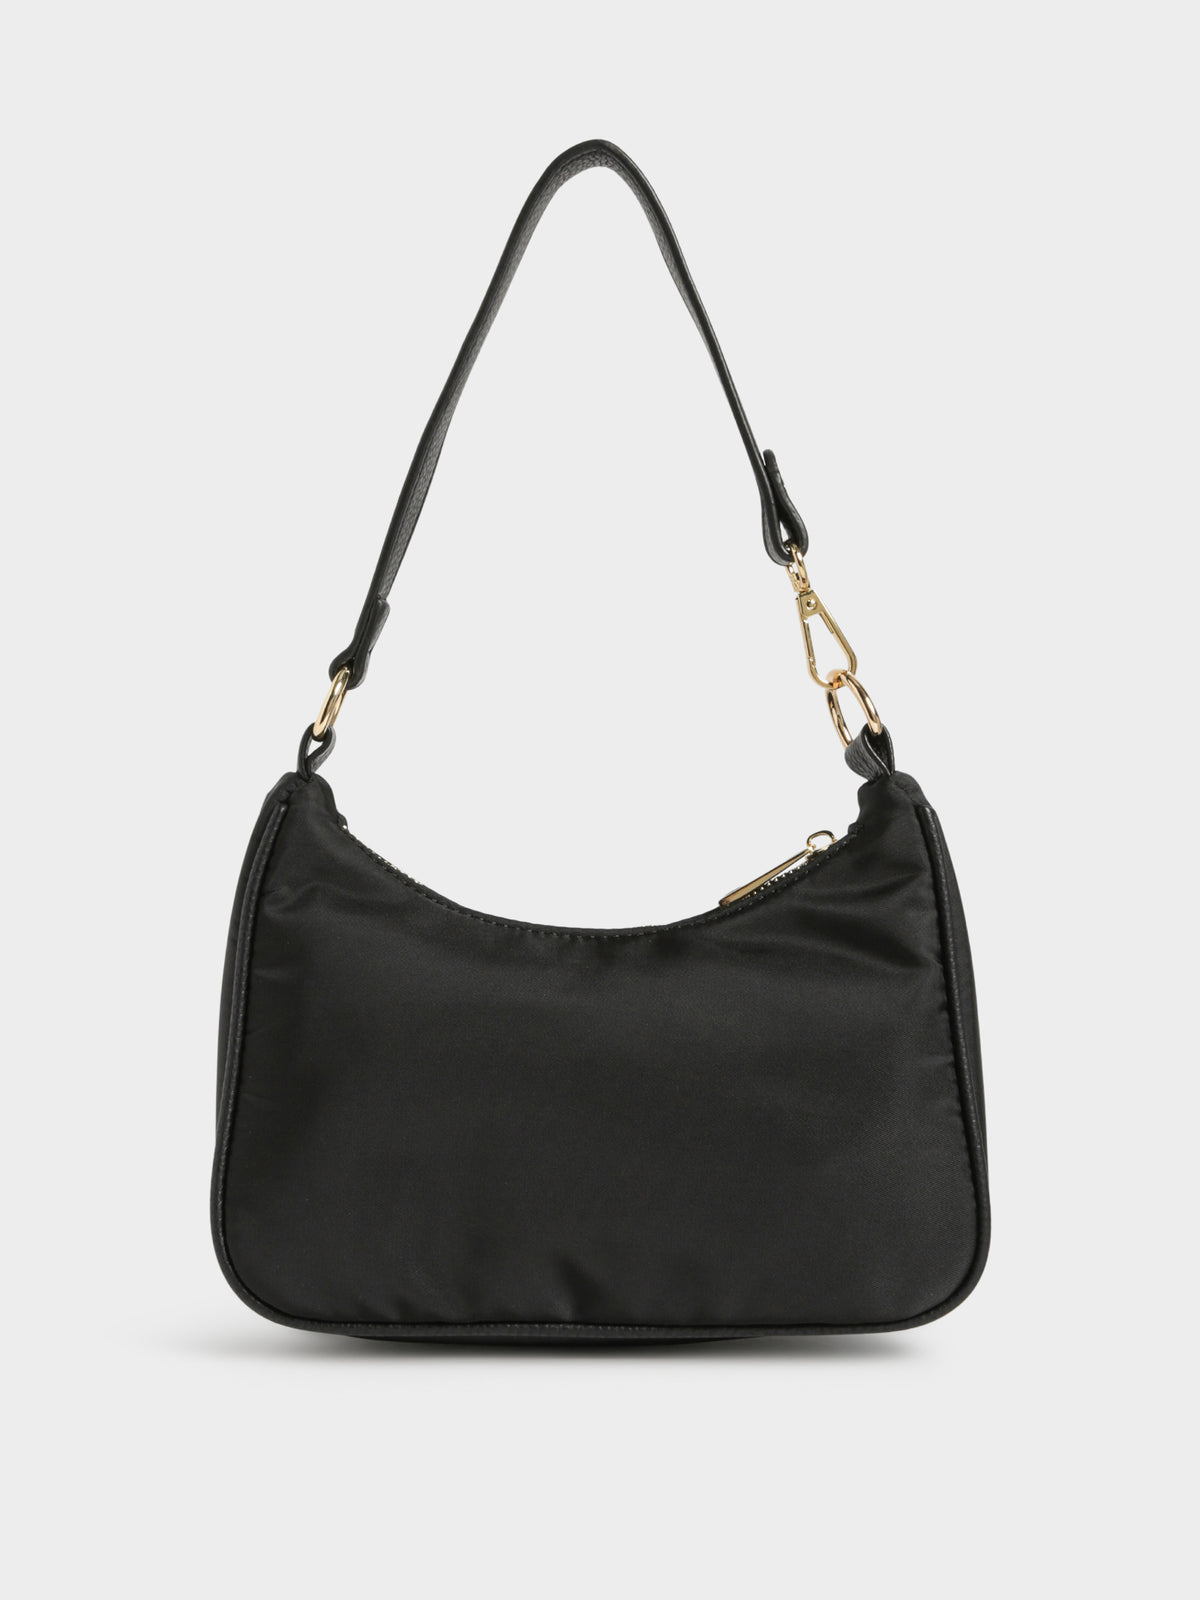 Tal Nylon Shoulder Bag in Black